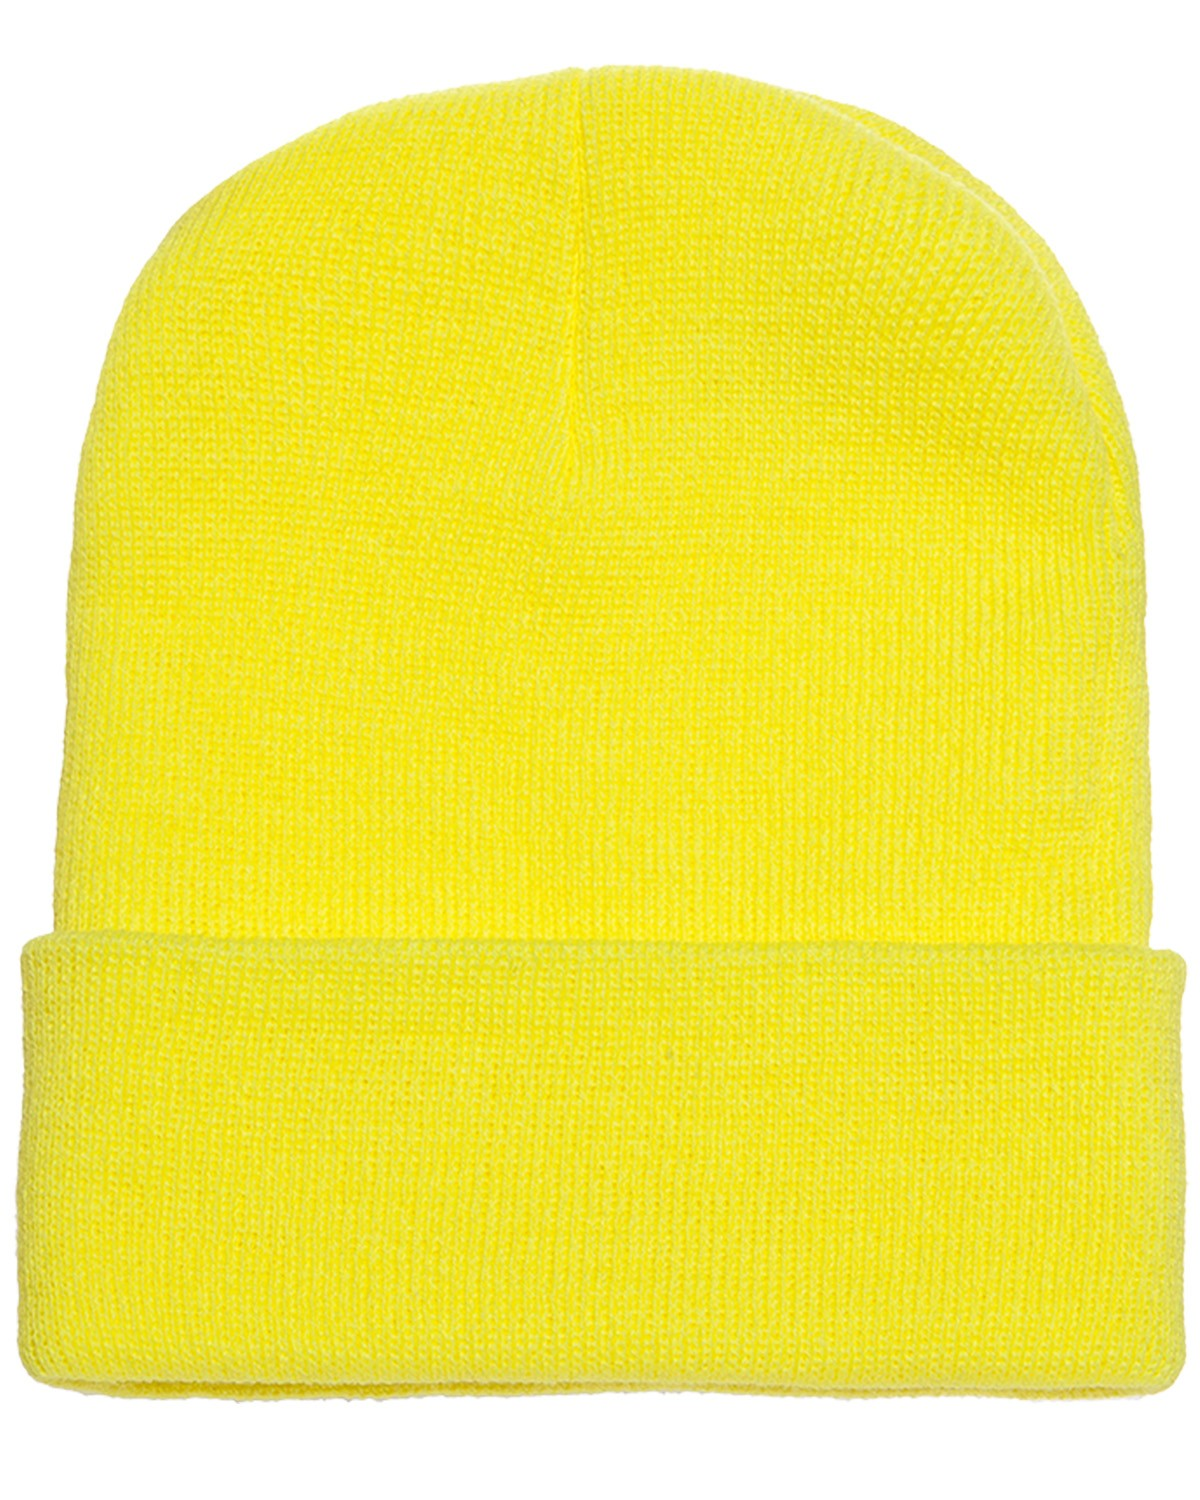 1501 Yupoong SAFETY YELLOW